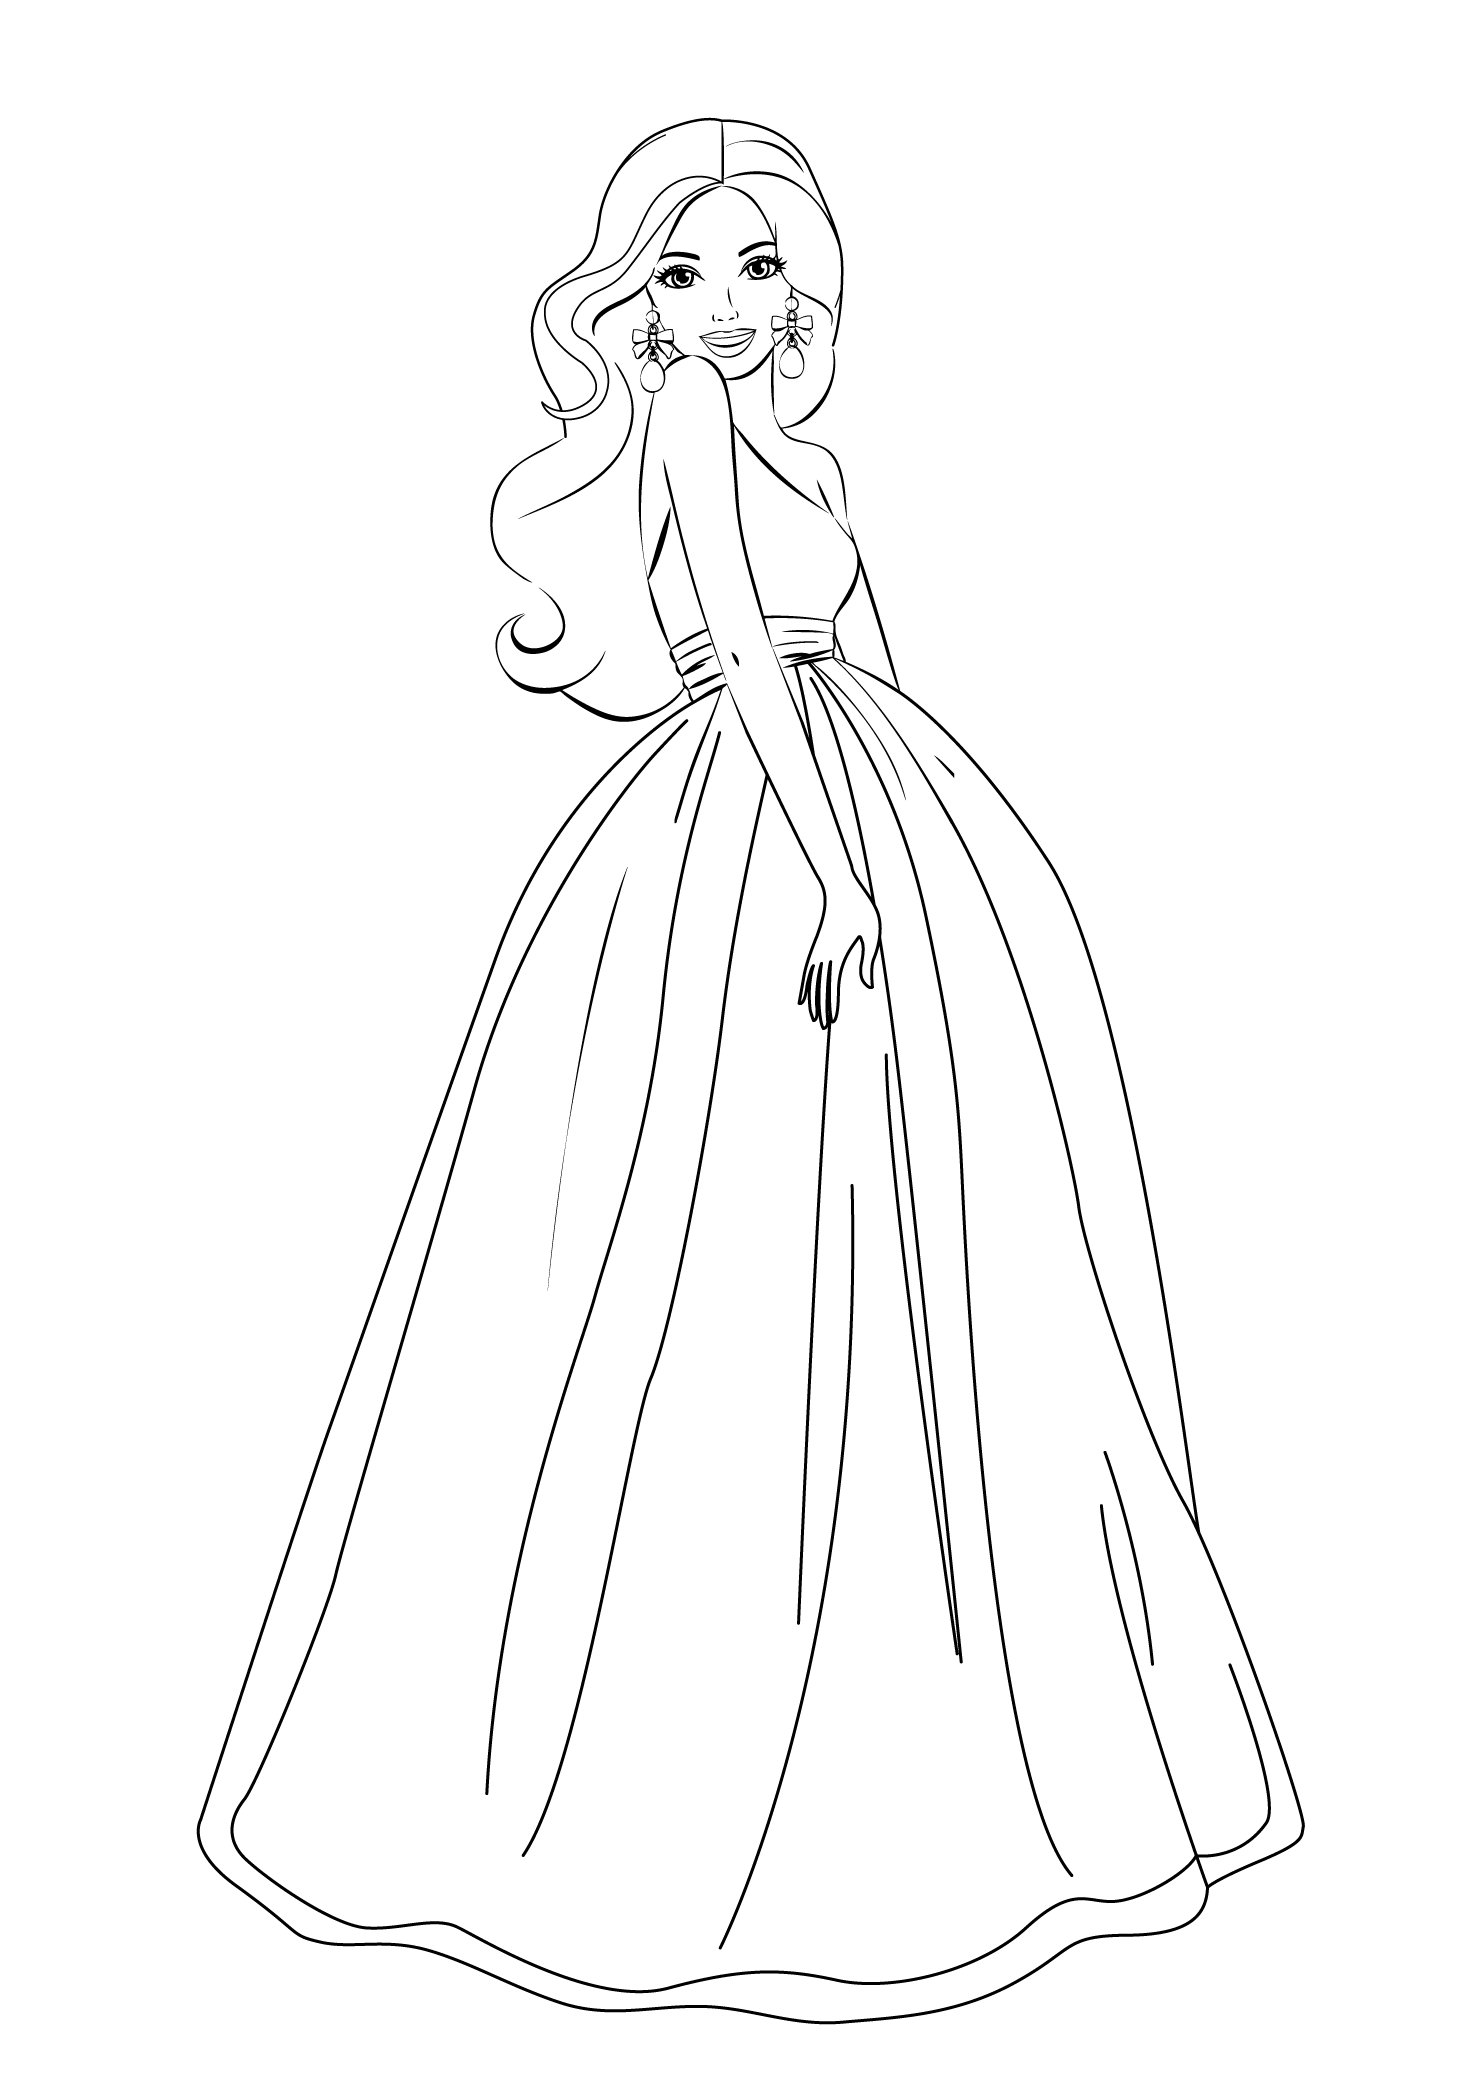 Barbie Coloring Pages For Girls Free Printable   Princess